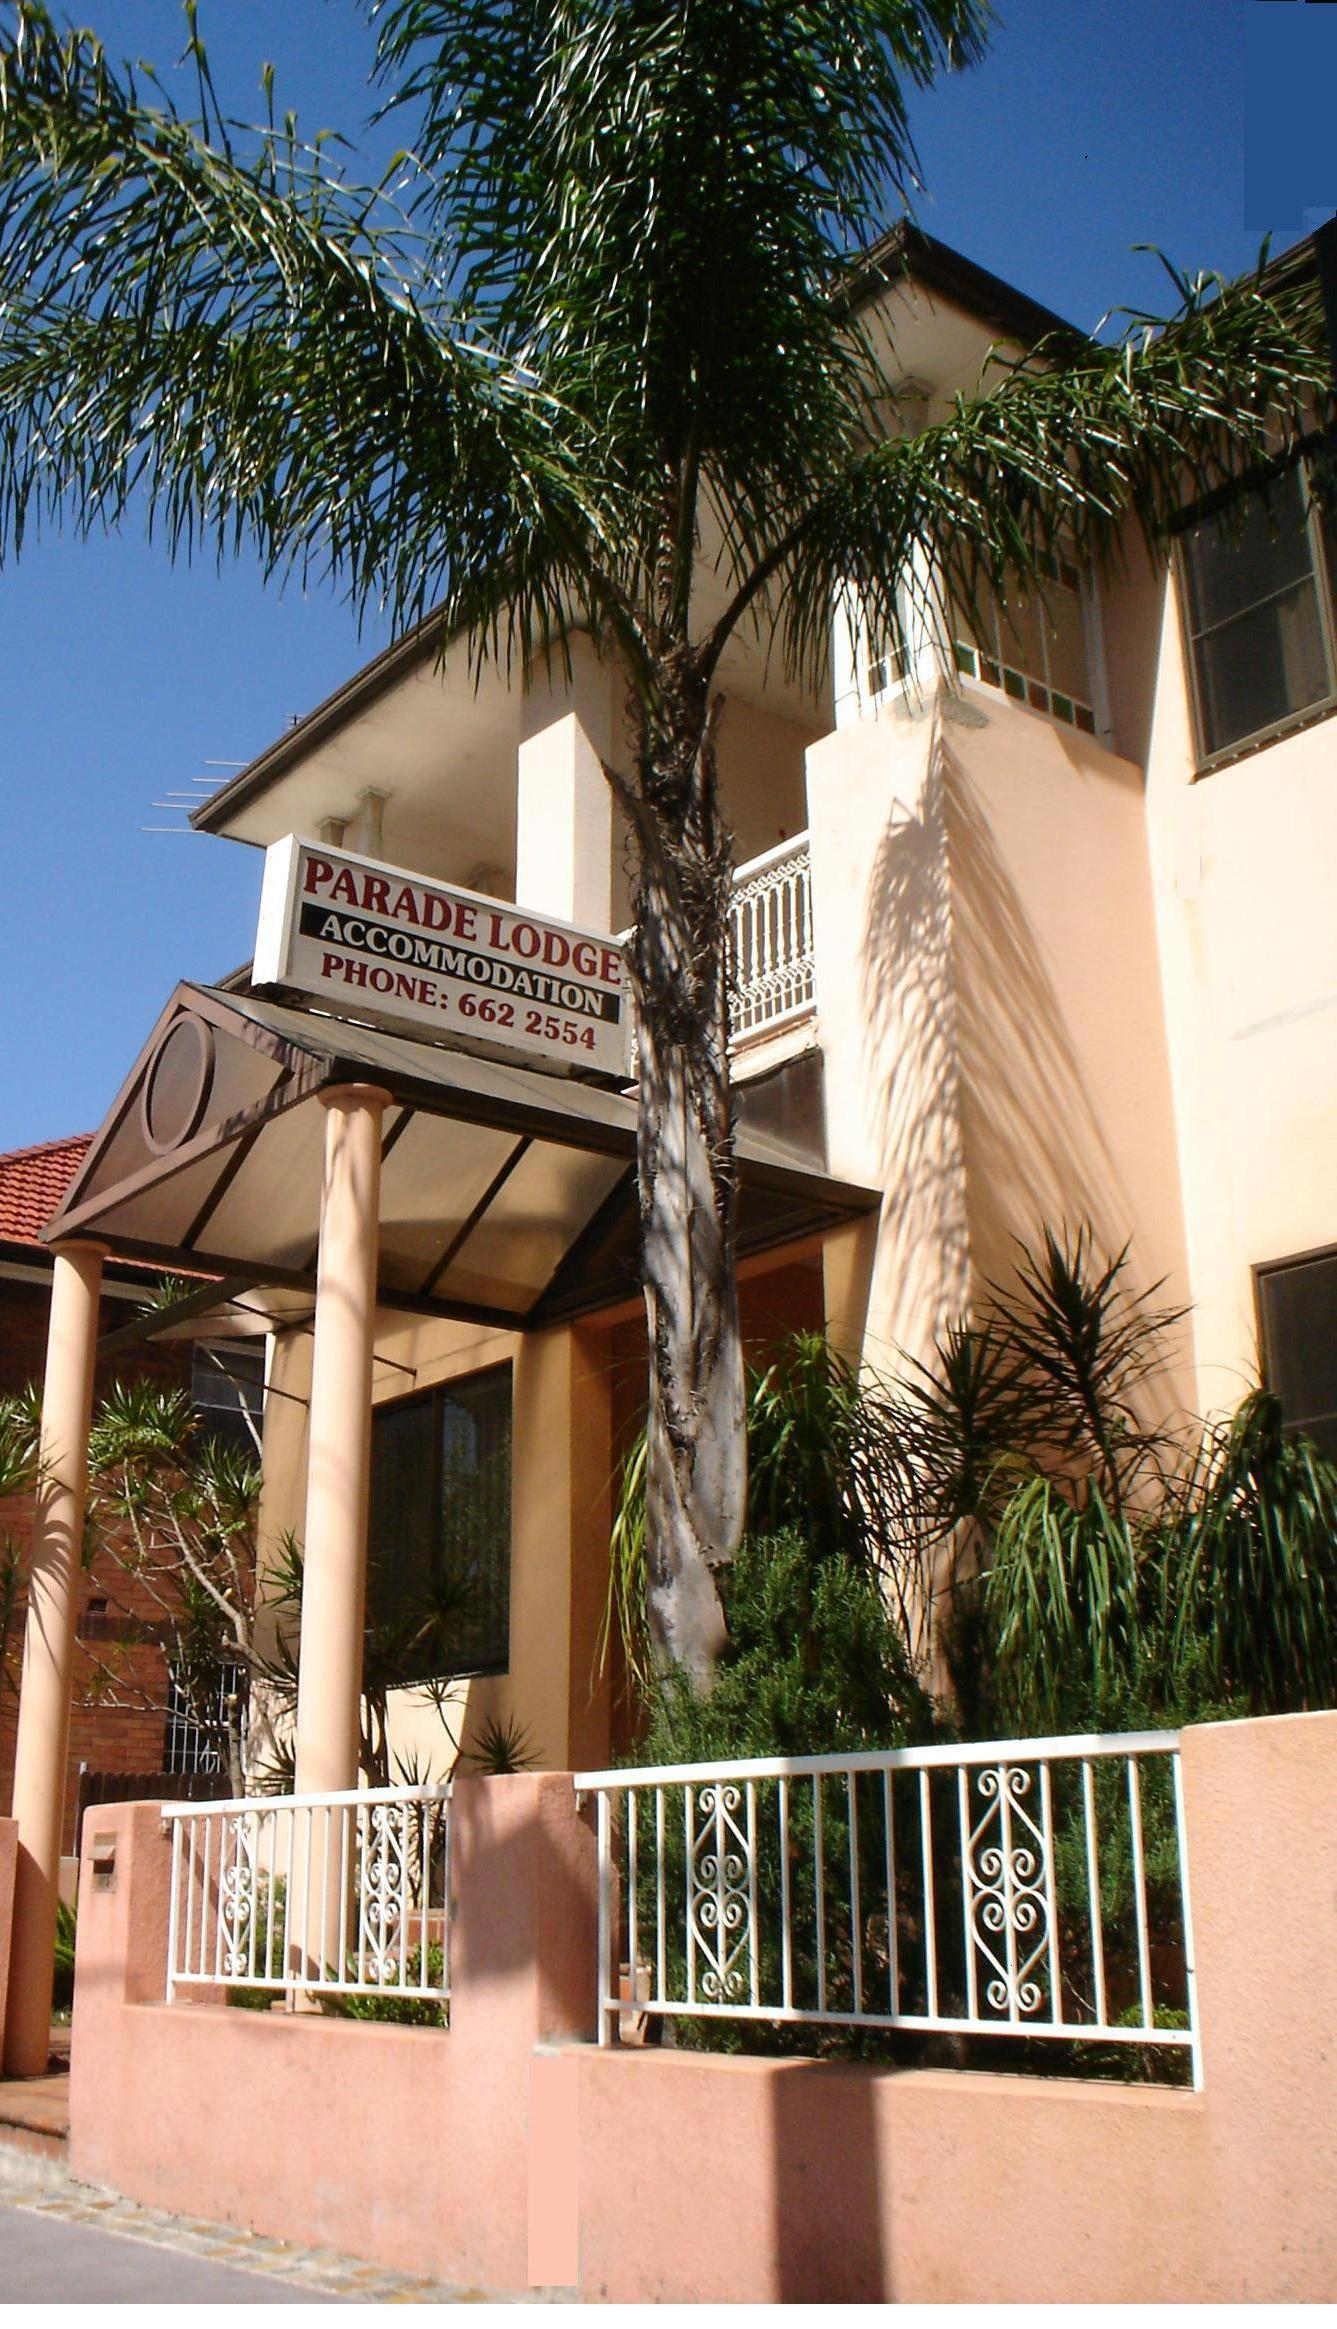 Parade Lodge - Accommodation Cooktown